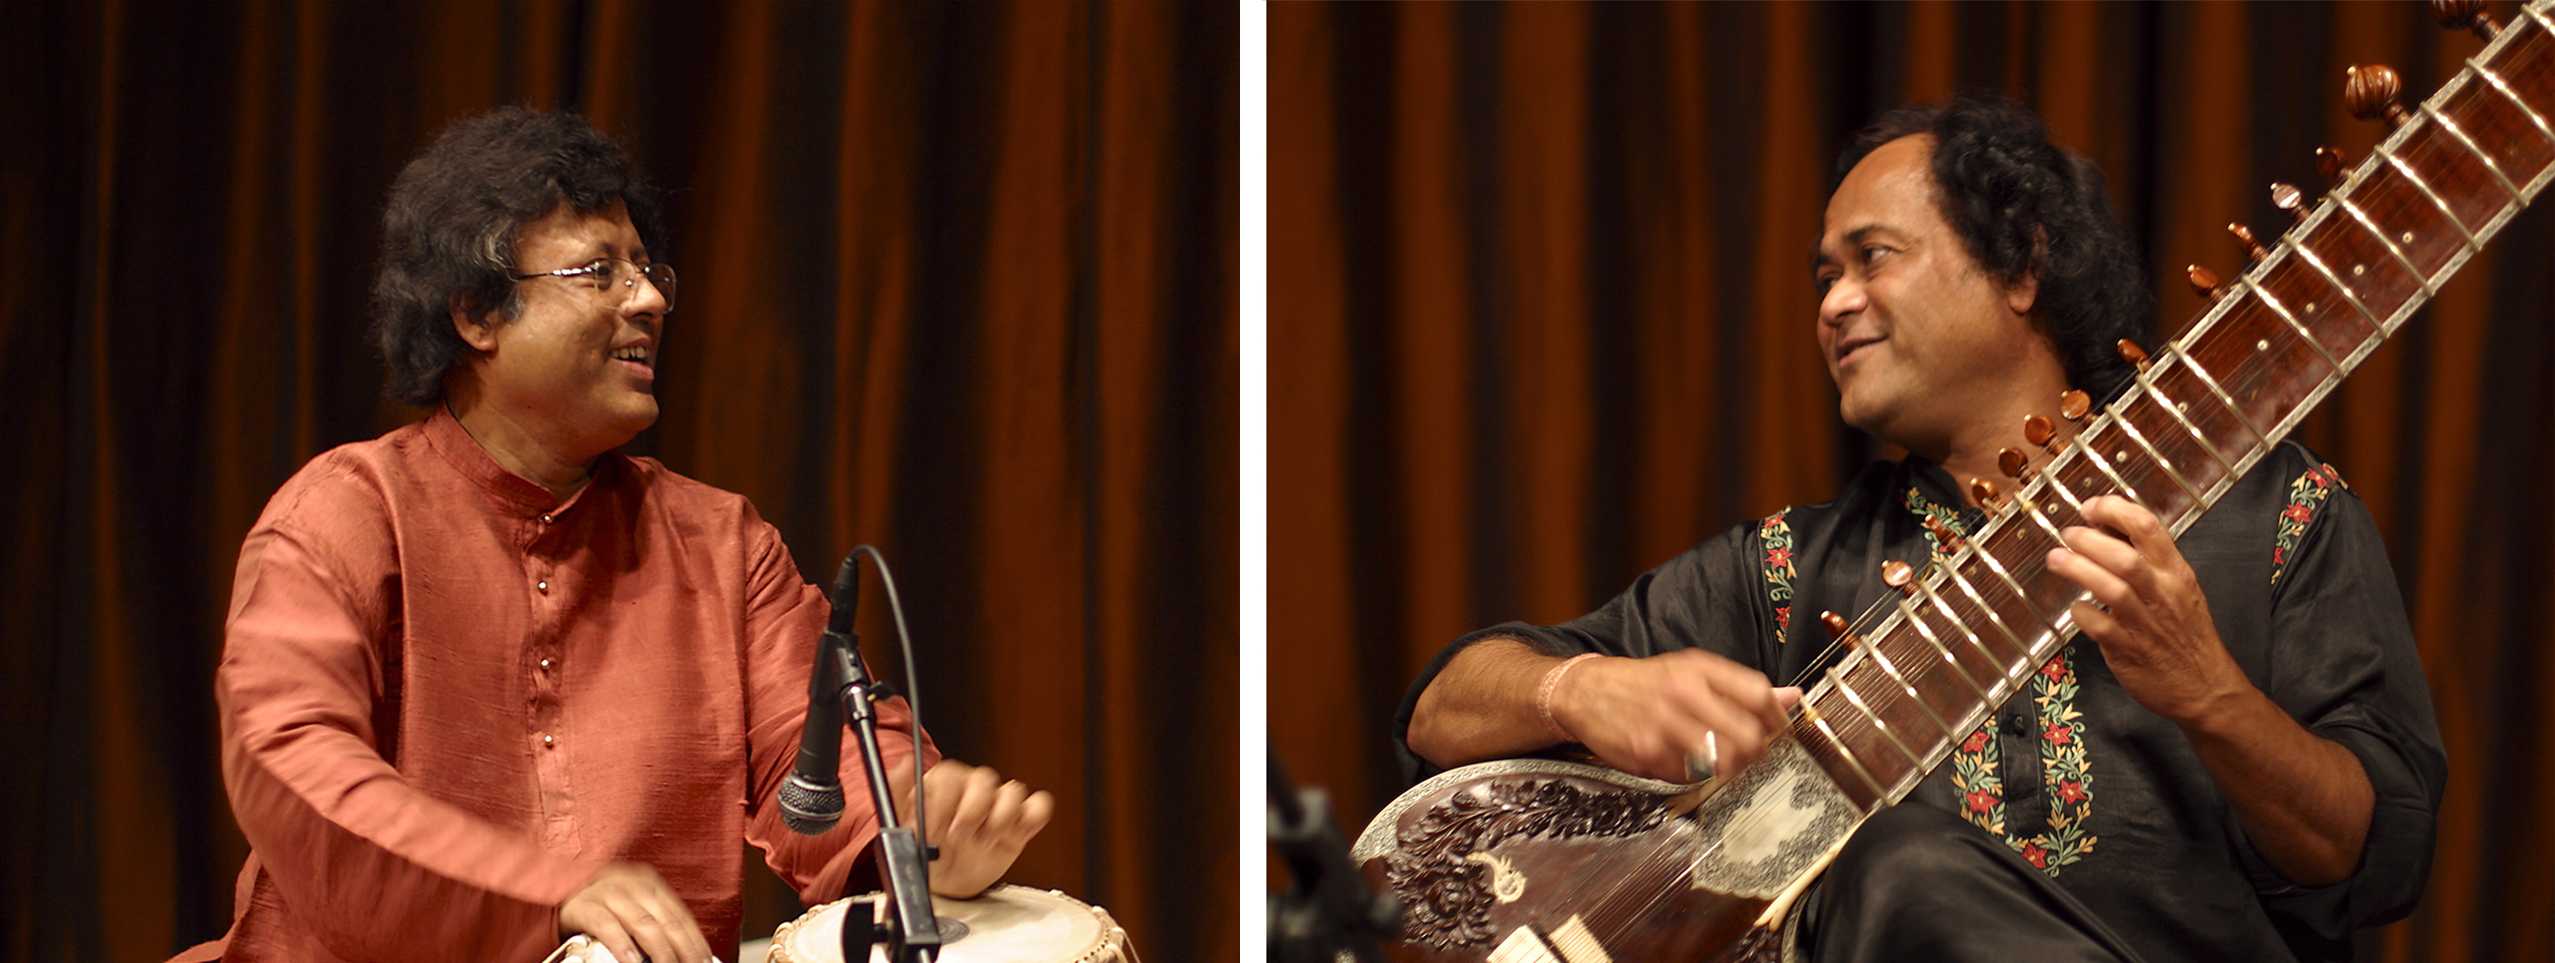 Krishna Mohan Bhatt performs Indian ragas on sitar, accompanied by tablas virtuoso Anindo Chatterjee on percussion. Their concert features an extensive rendition of raga Yaman Kalyan as well as music inspired by folk tunes and Bengali devotional songs.